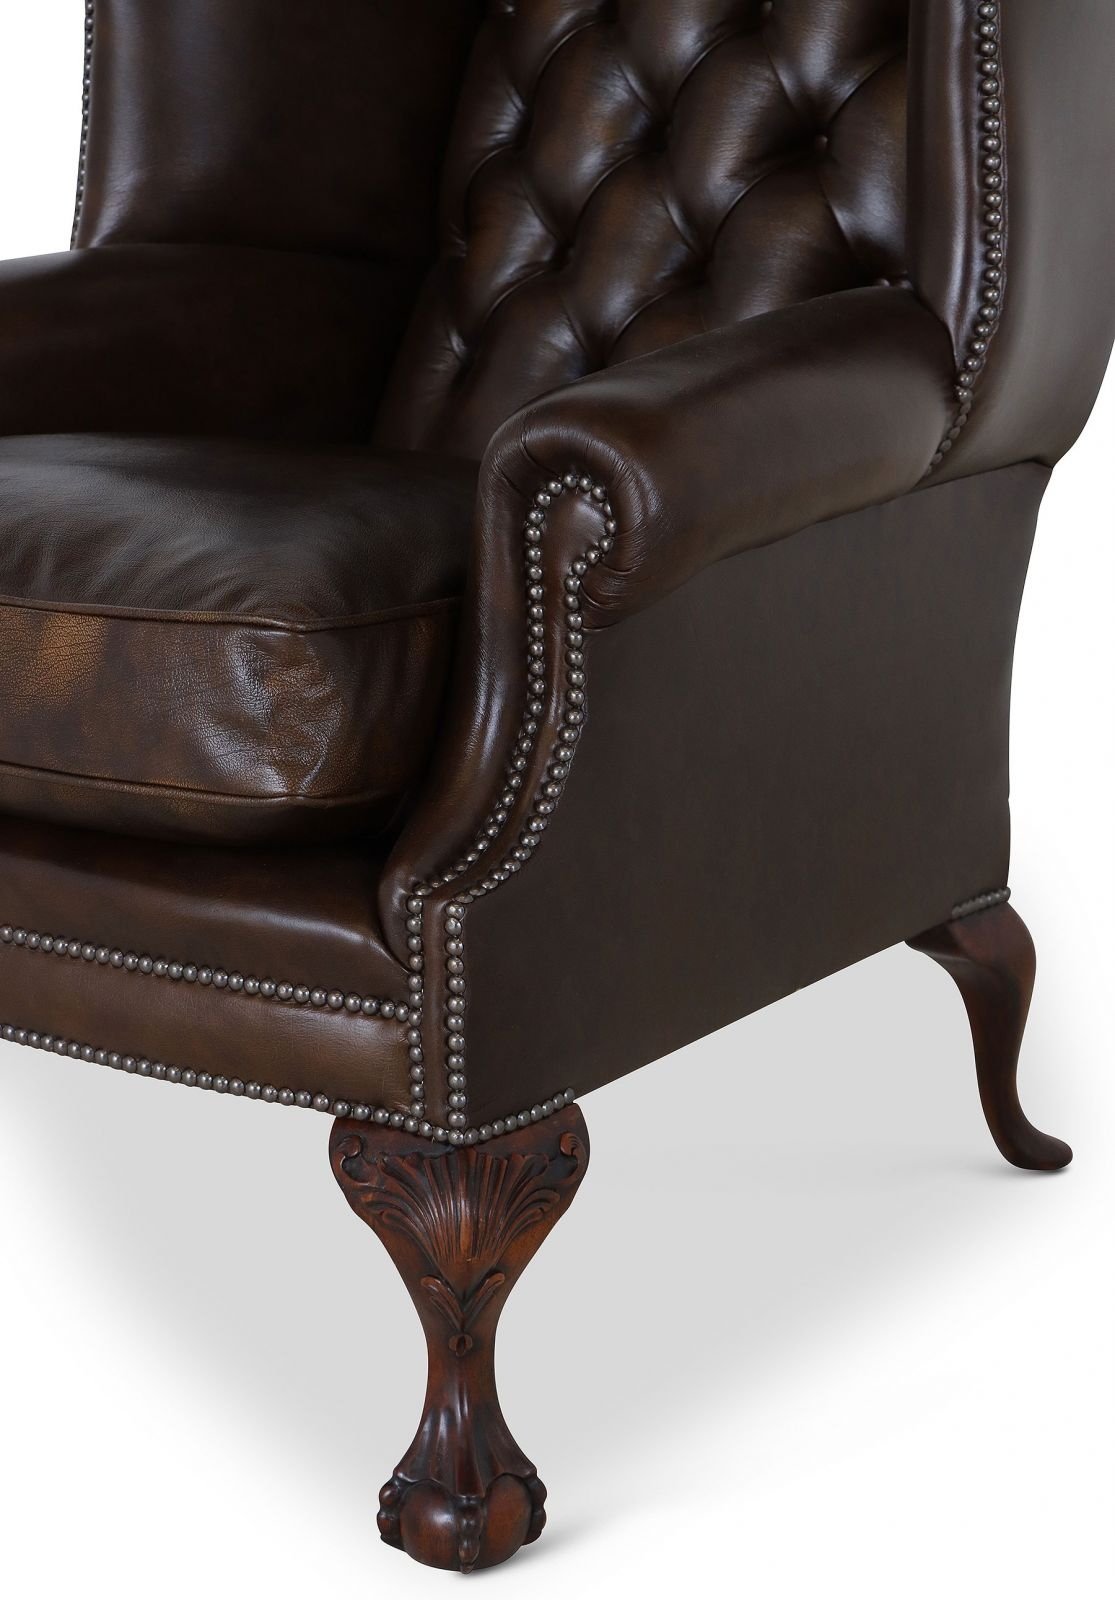 Coleridge traditional leather wing chair - Antique Gold